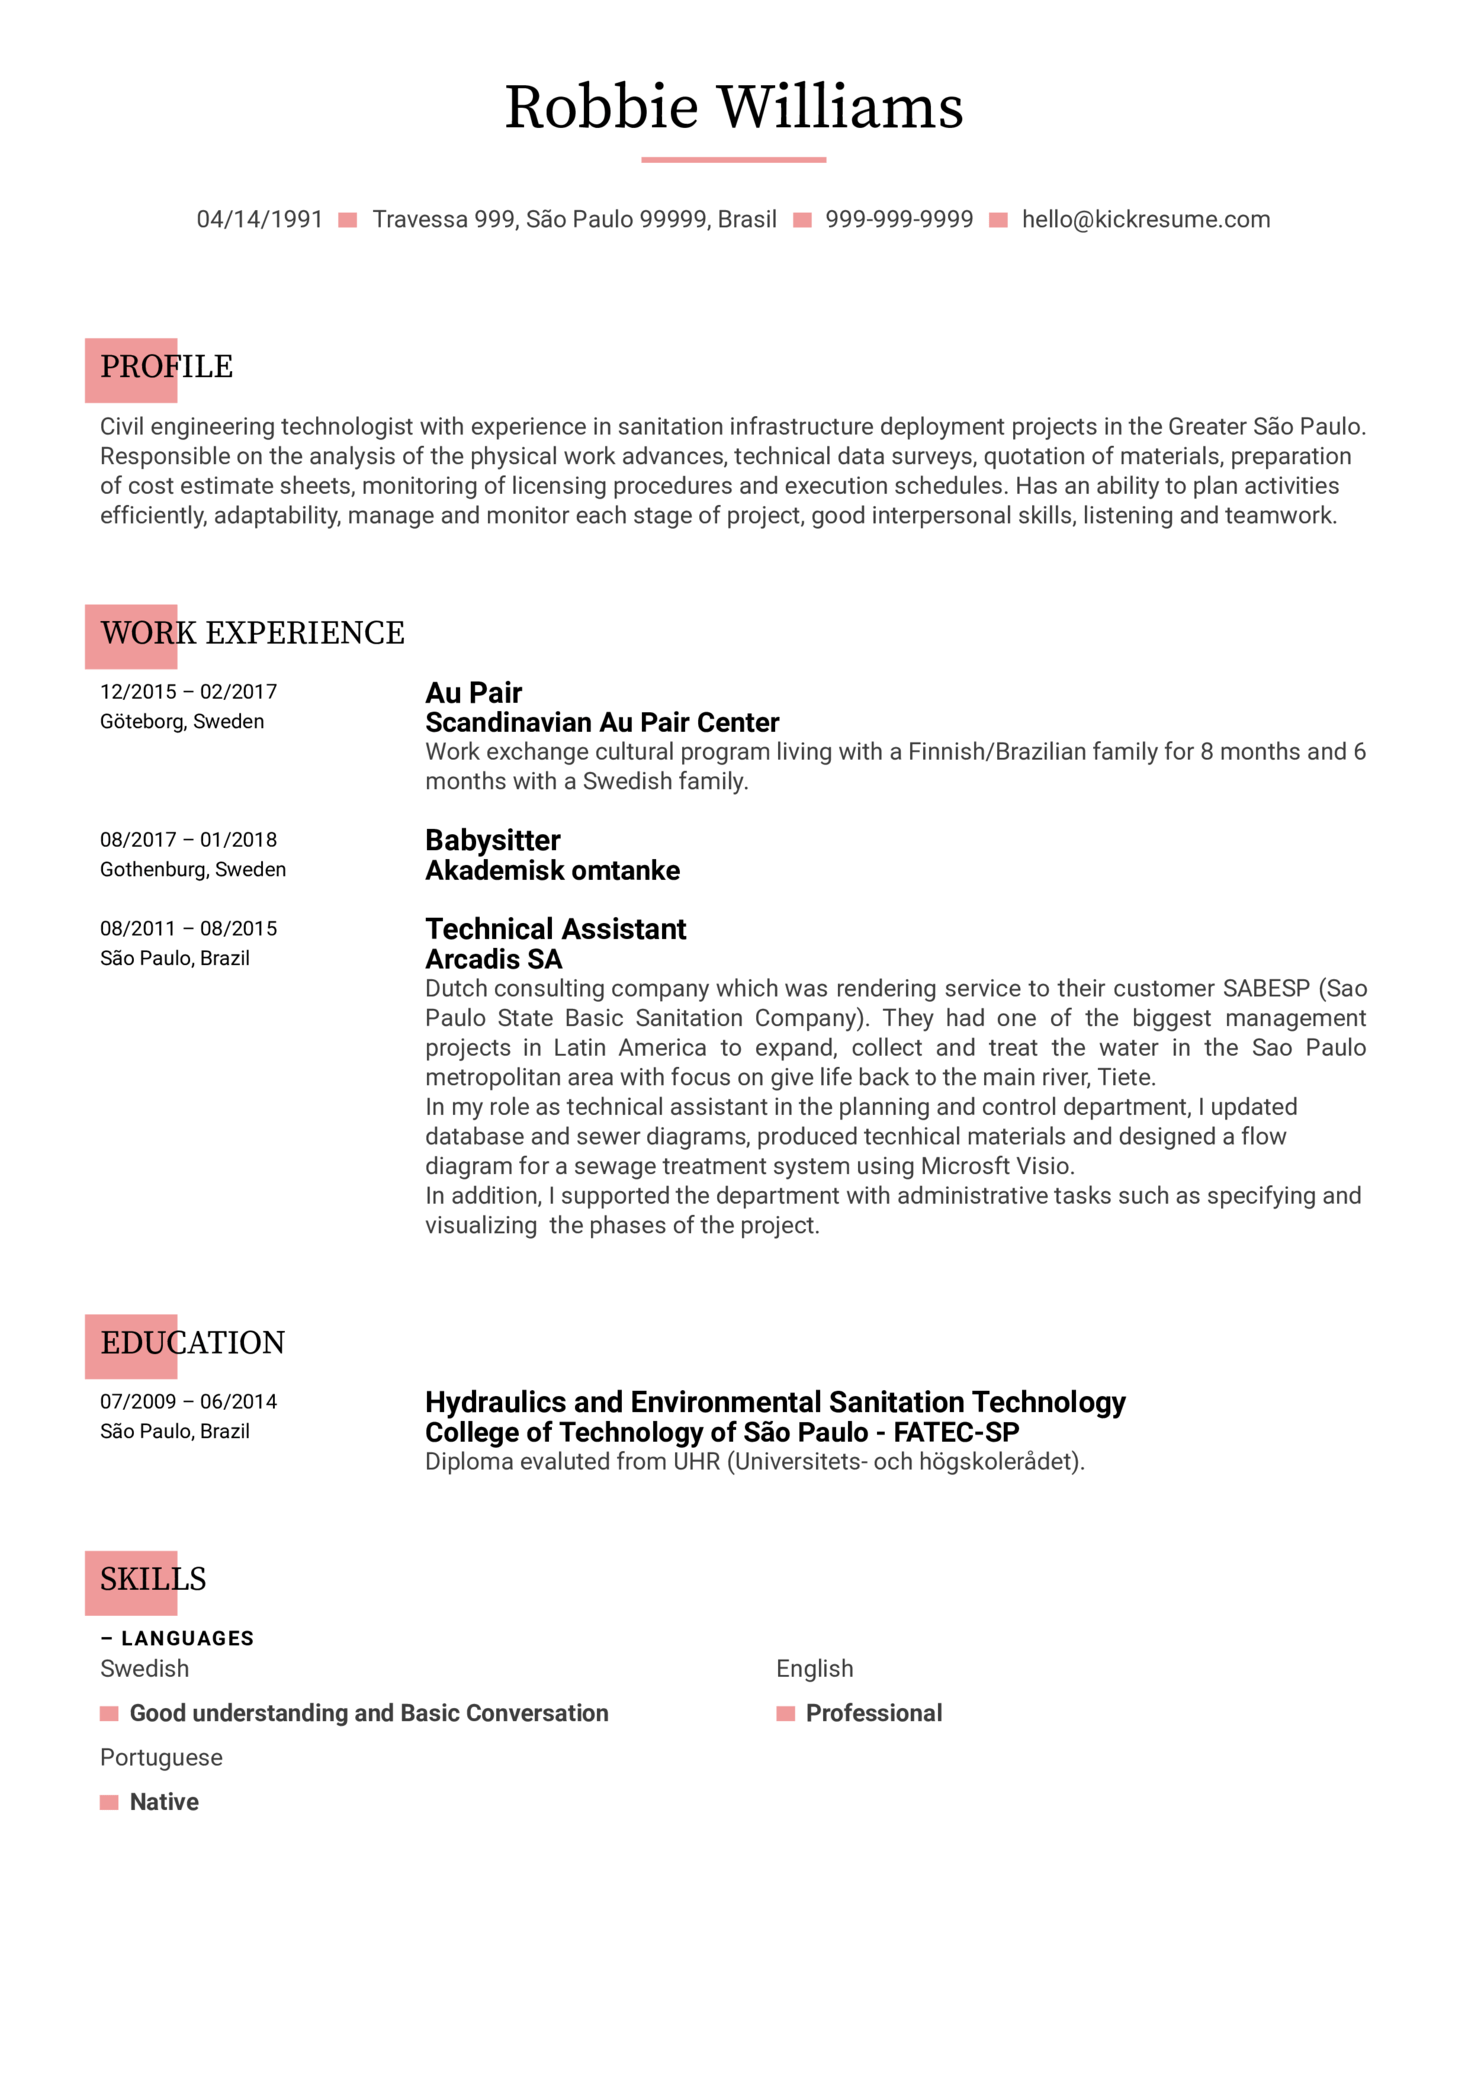 Engineering Technologist CV Template (Part 1)